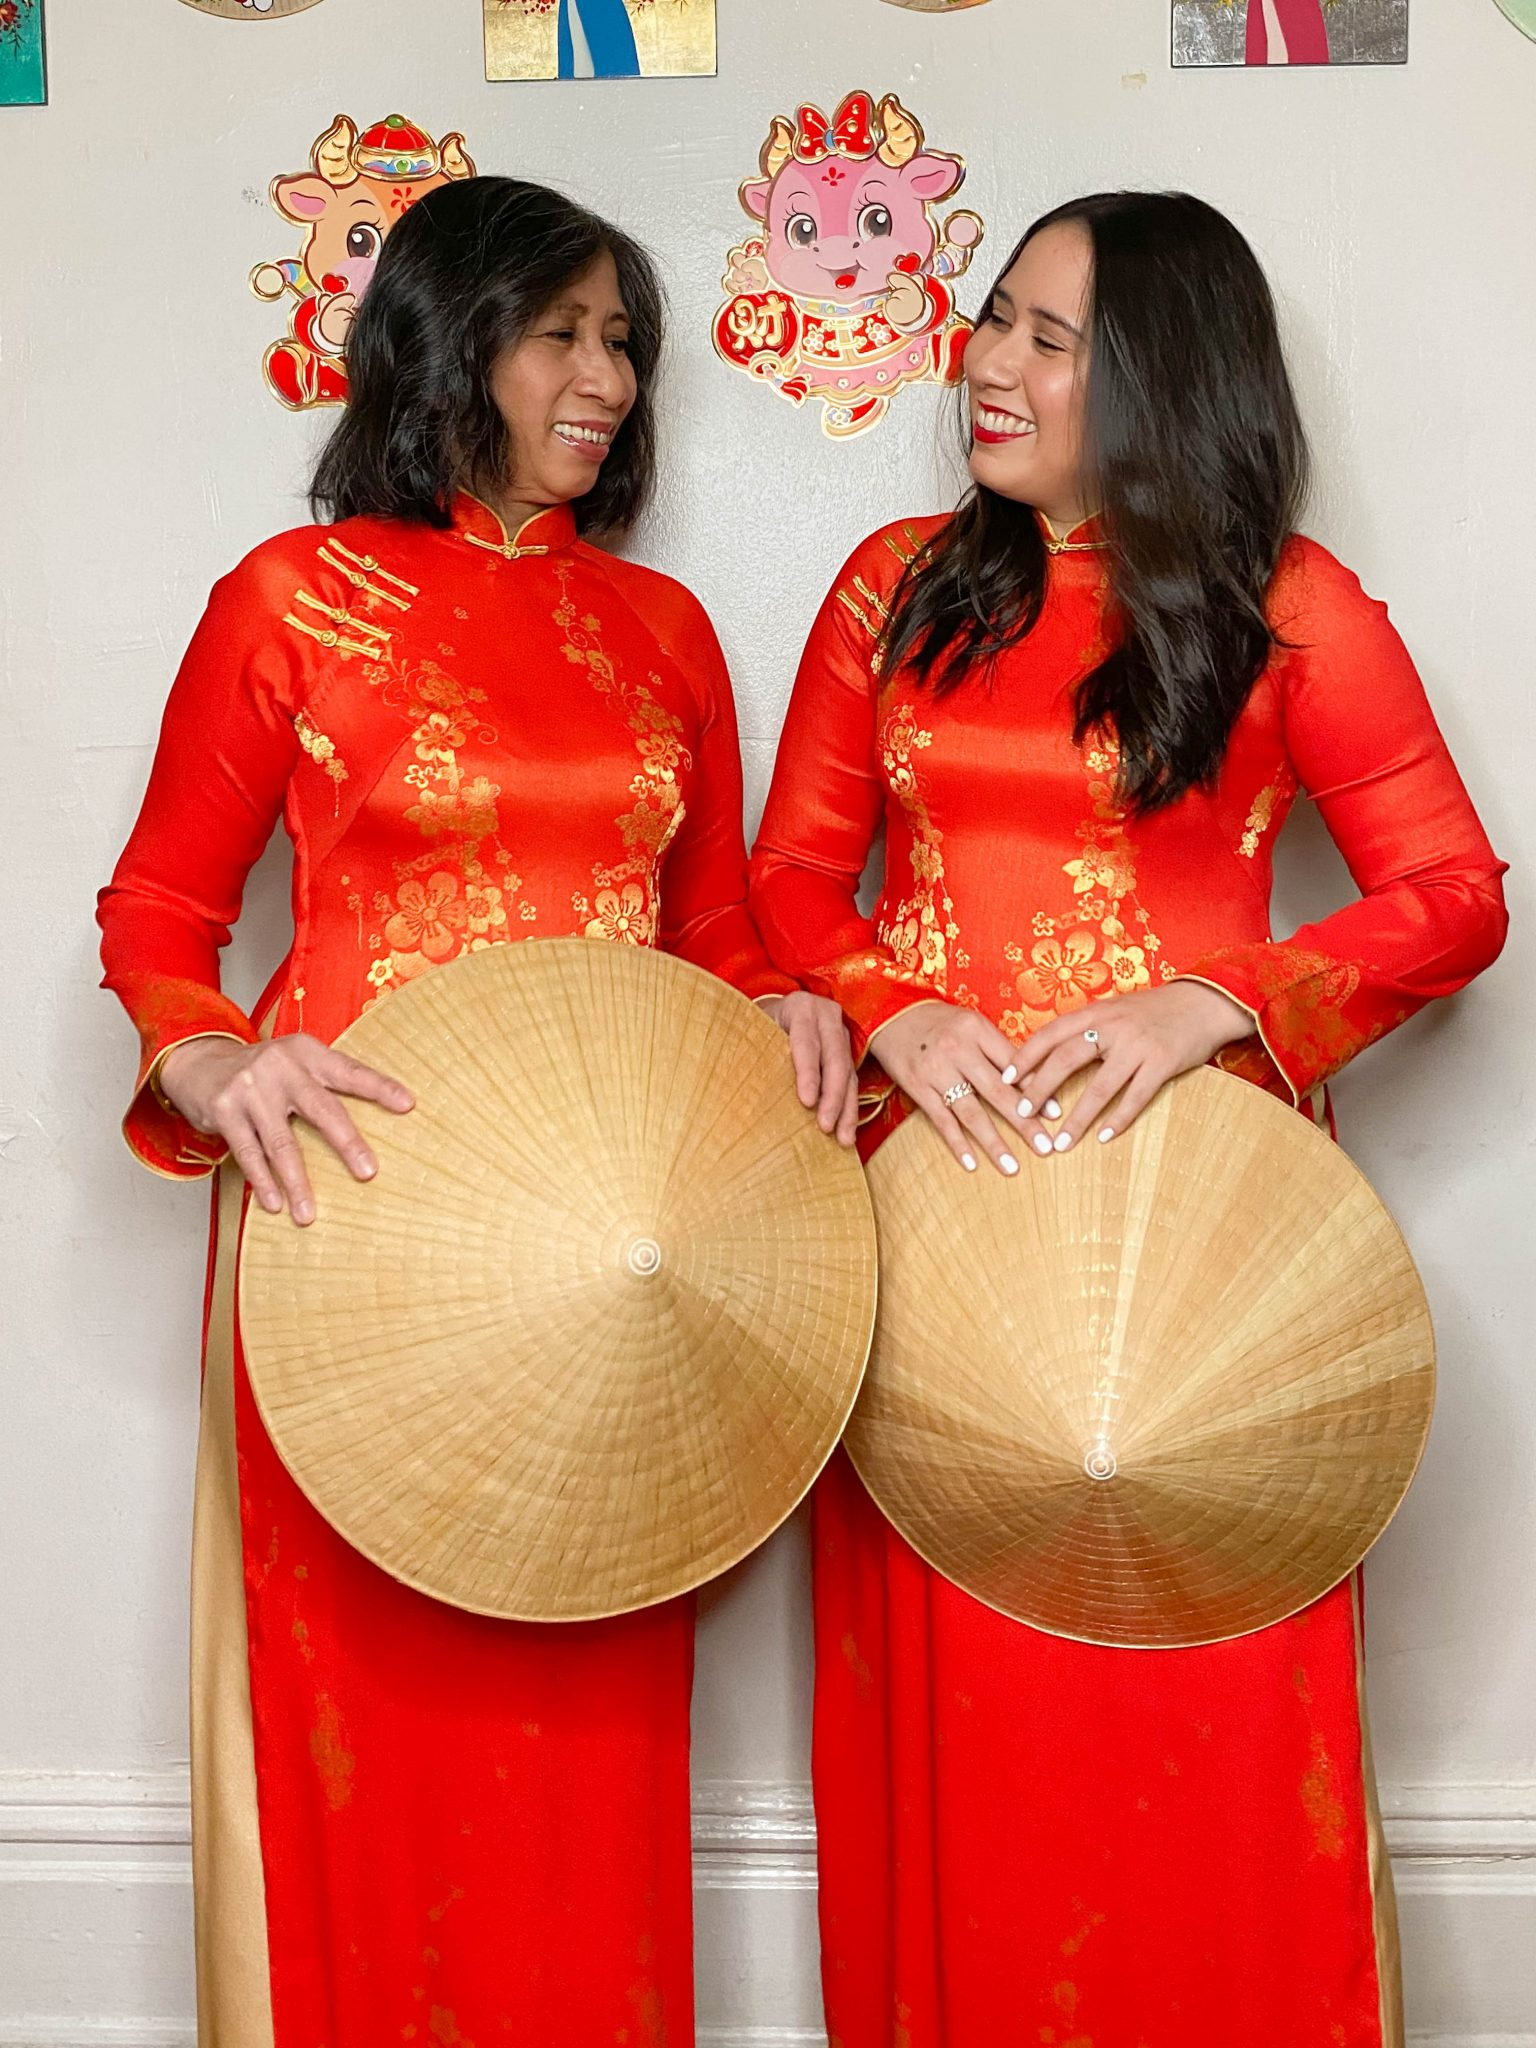 Happy Lunar New Year - Year of the Ox by Basically A Mess (photo of two women in traditional Vietnamese ao dai and rice hats)